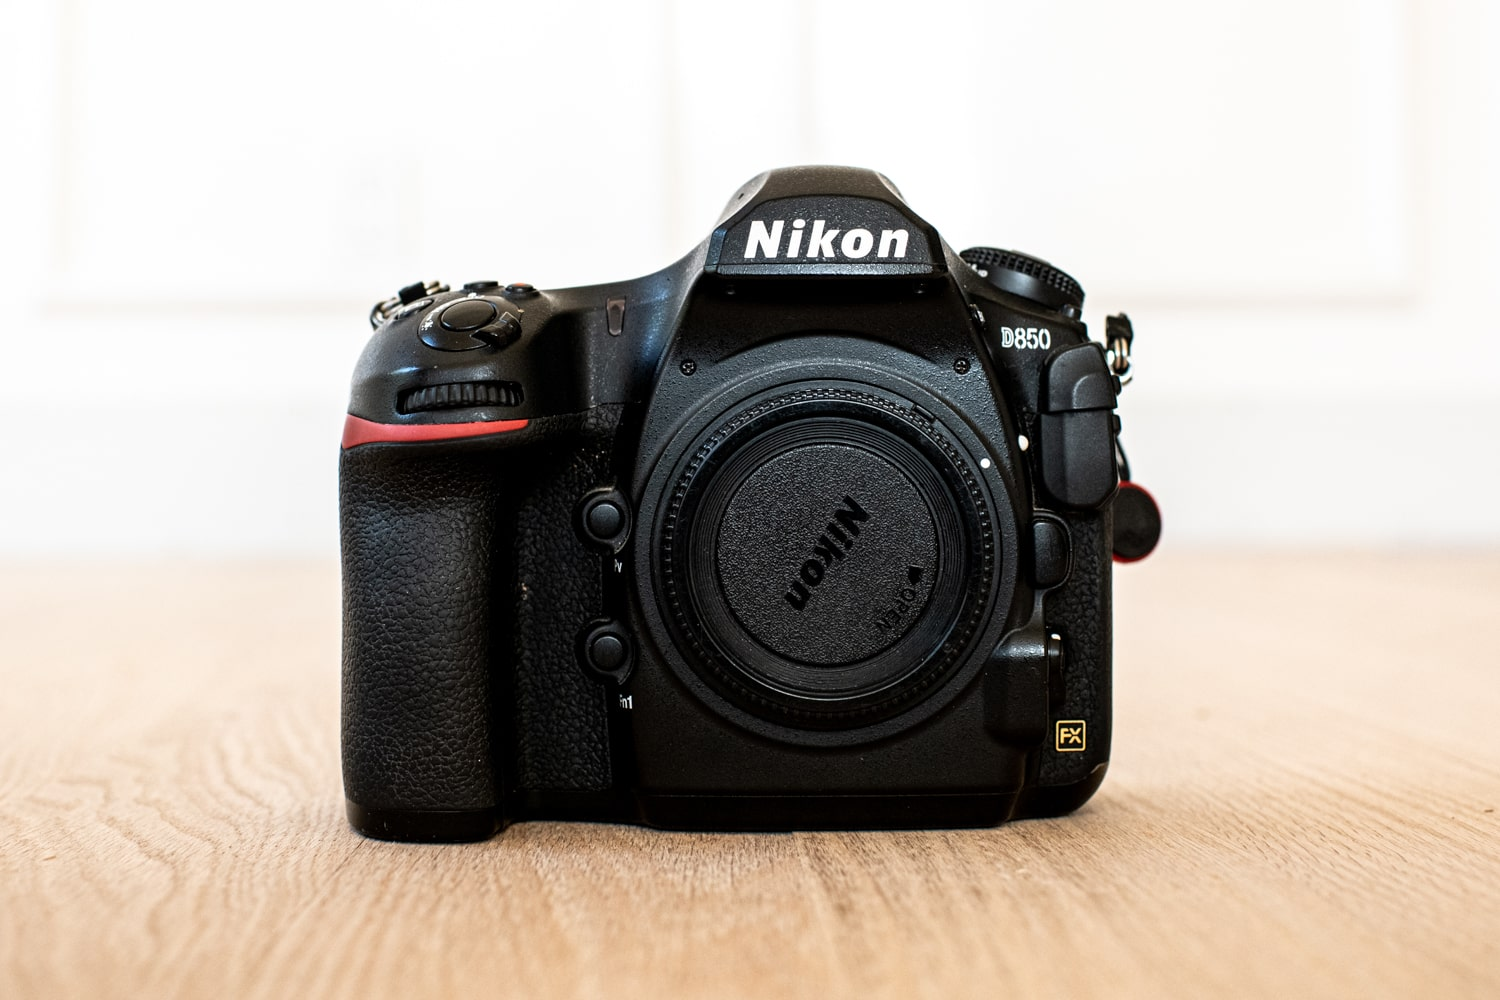 Nikon d850 dslr camera for weddings.